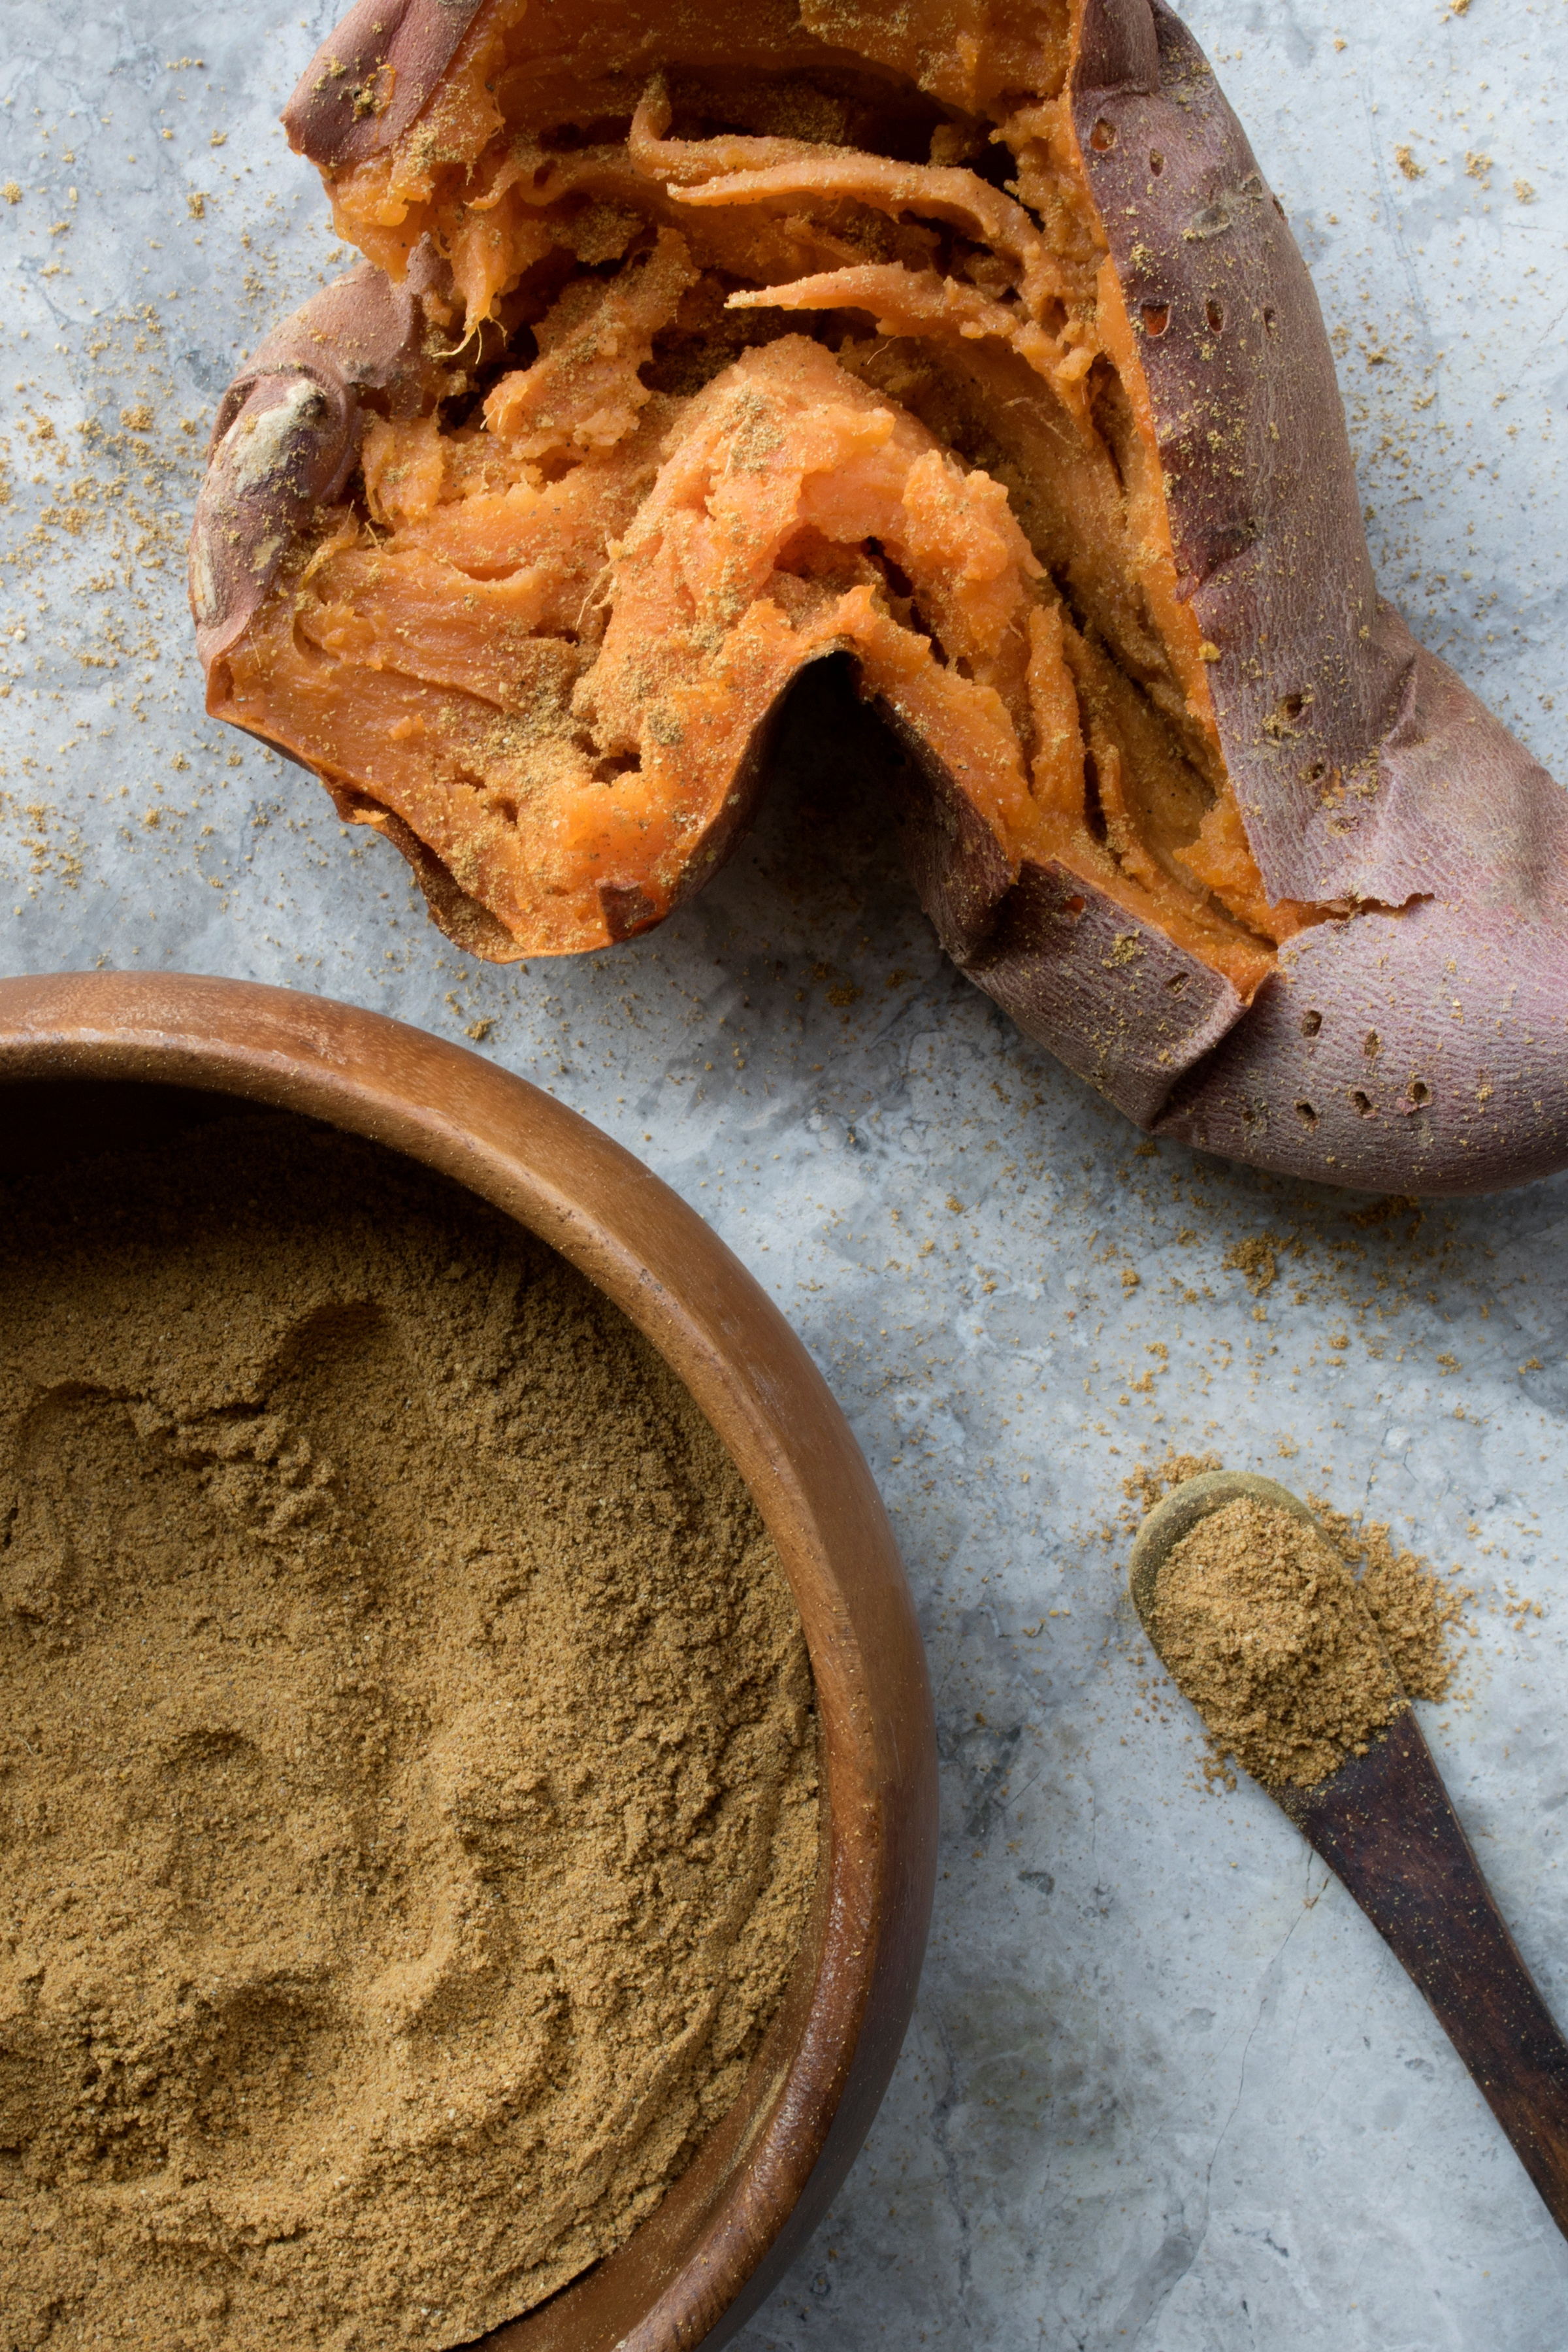 Artistic picture of baked and opened sweet potato with bowl of curry spice blend powder and spoon with same powder.